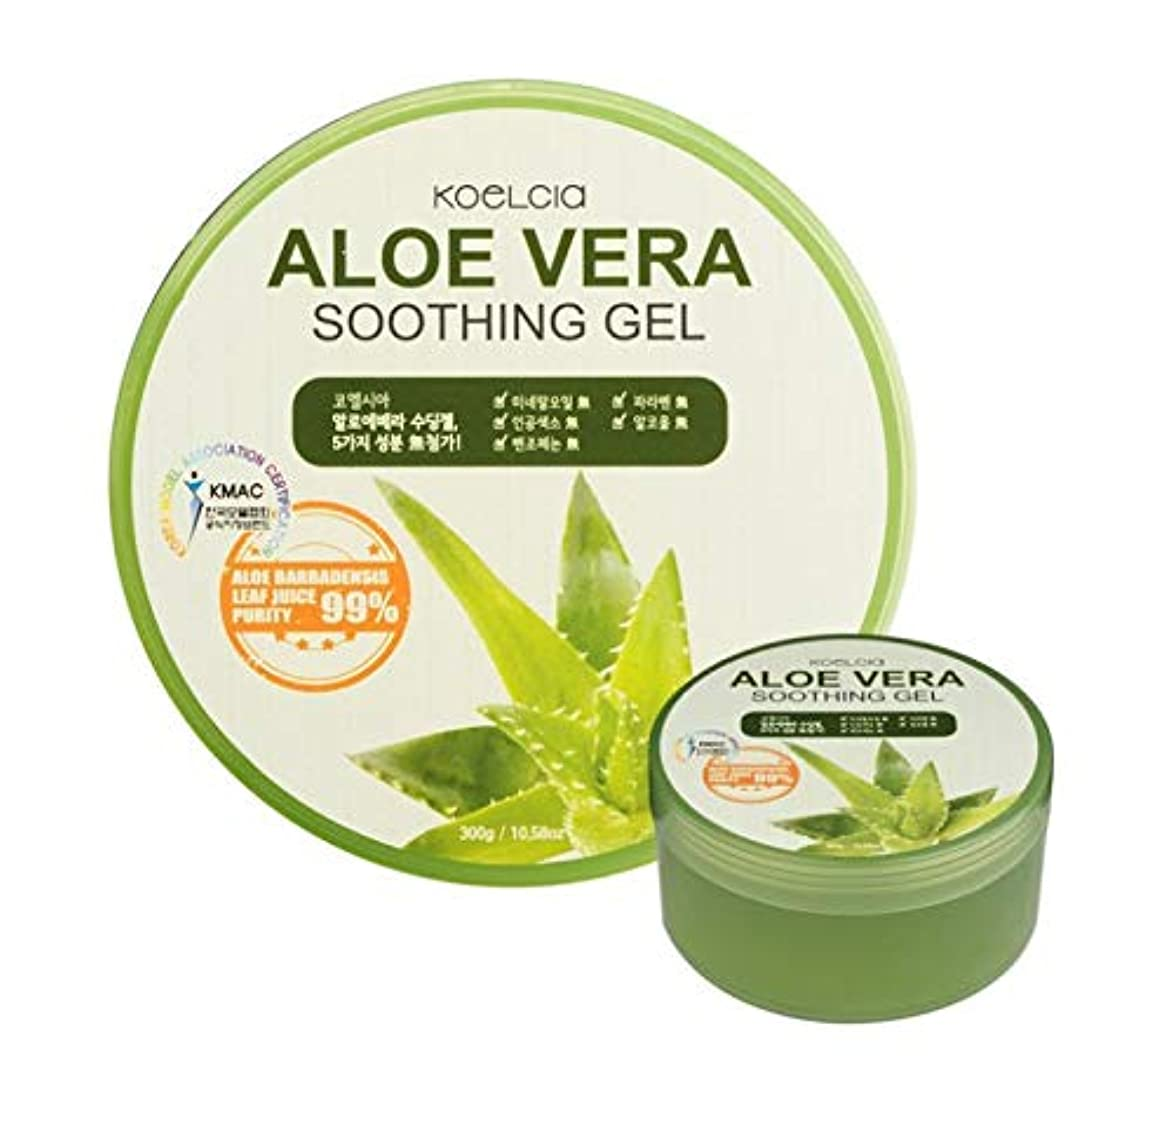 Koelcia Aloe Vera Moisture Soothing Gel 300ml [並行輸入品]